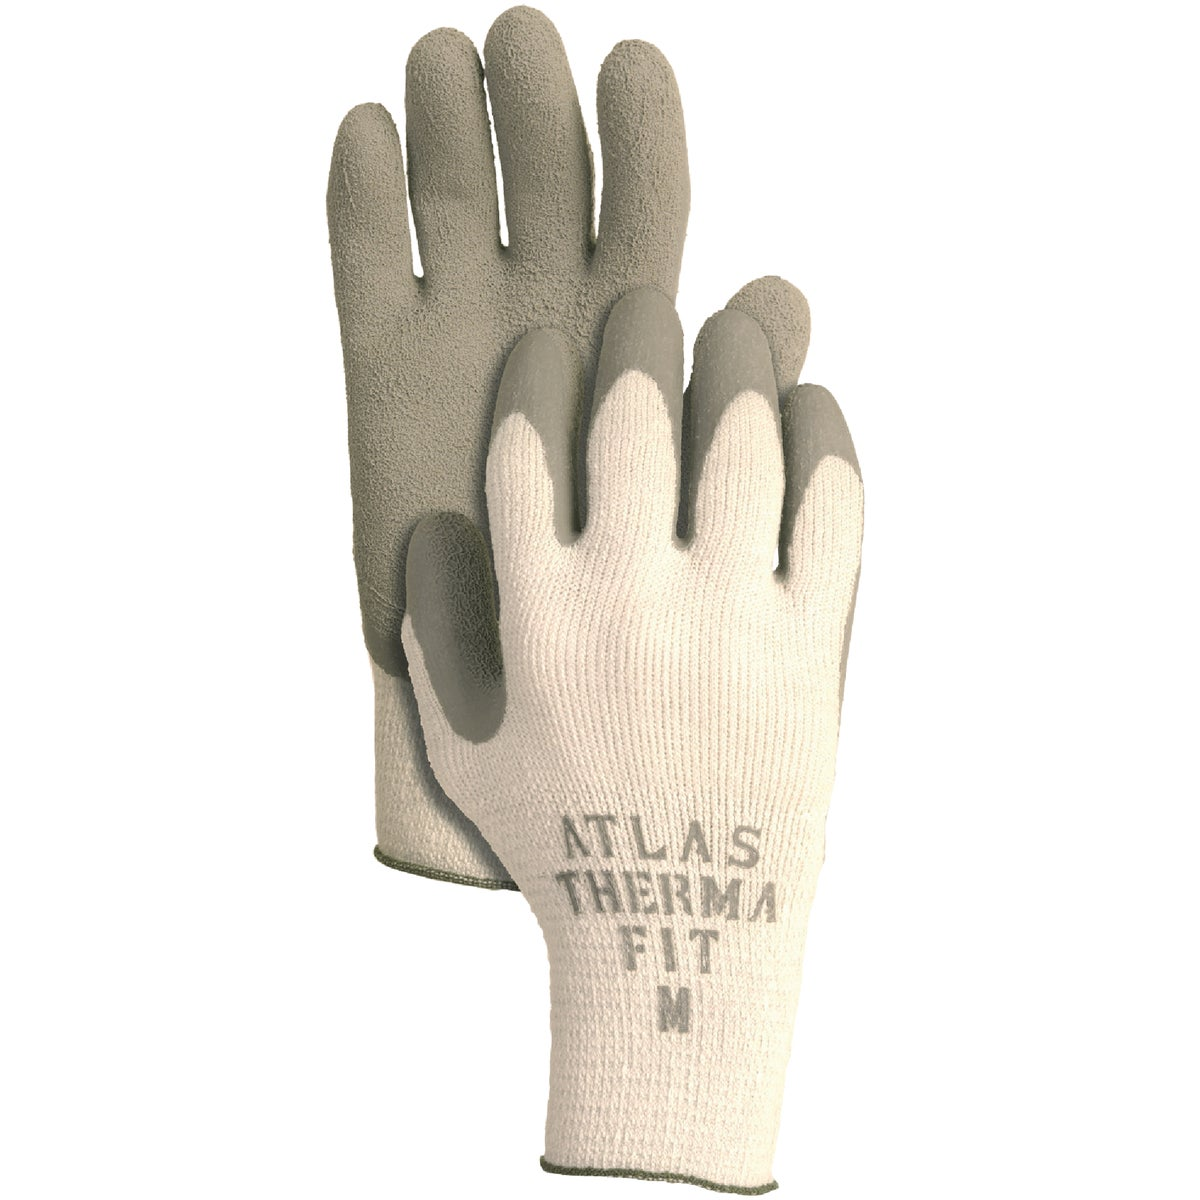 XL THERMA PALM DIP GLOVE - 451XL-10.RT by Showa Best Glove